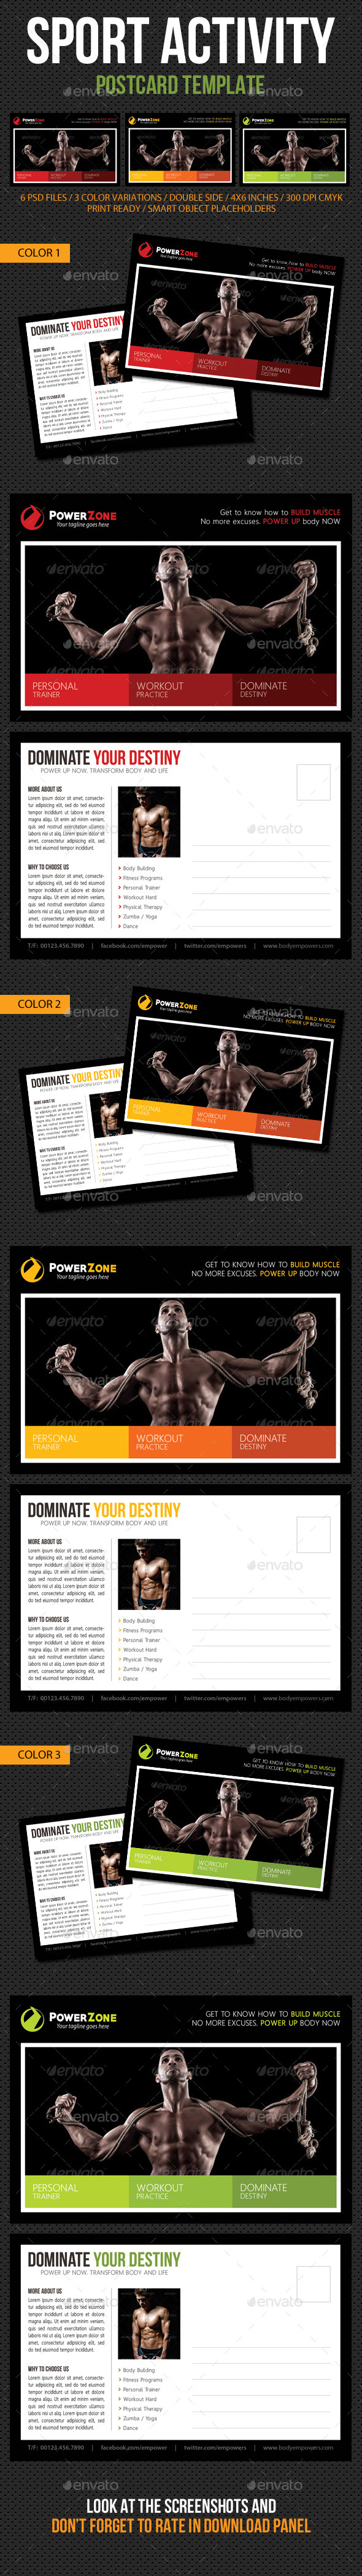 Sport Activity Postcard Template V09 - Cards & Invites Print Templates